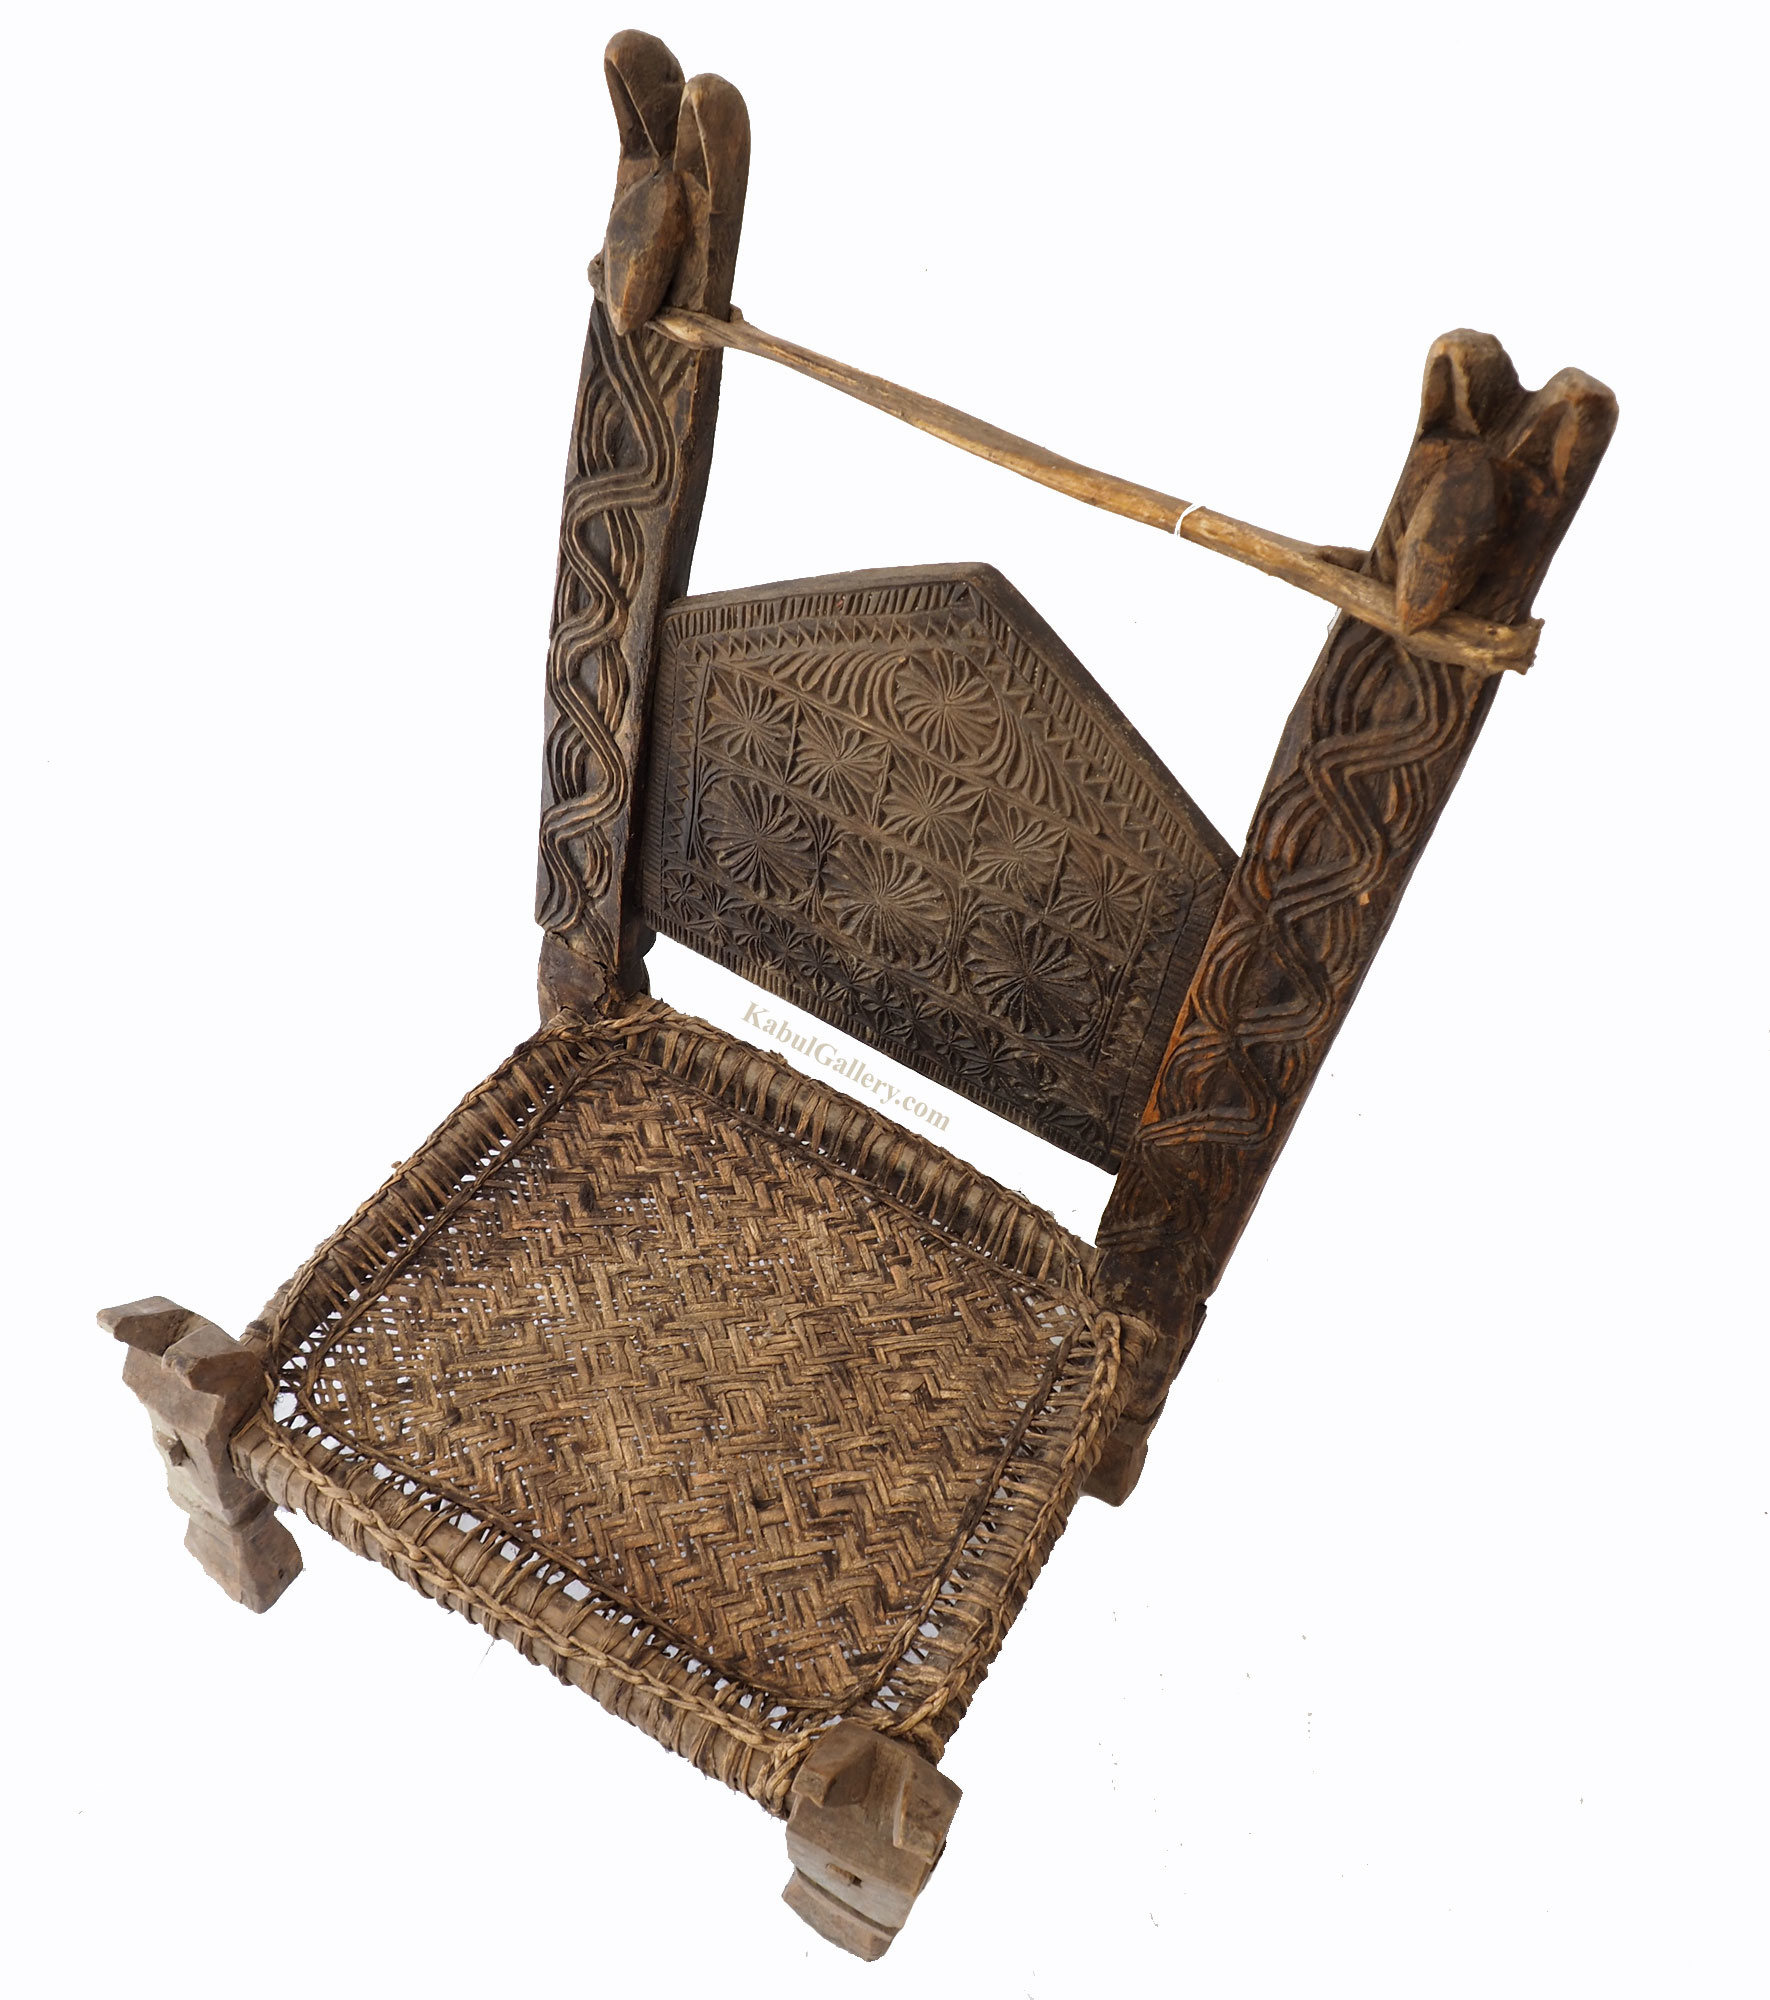 Antique Nuristan Chair Stuhl No: E